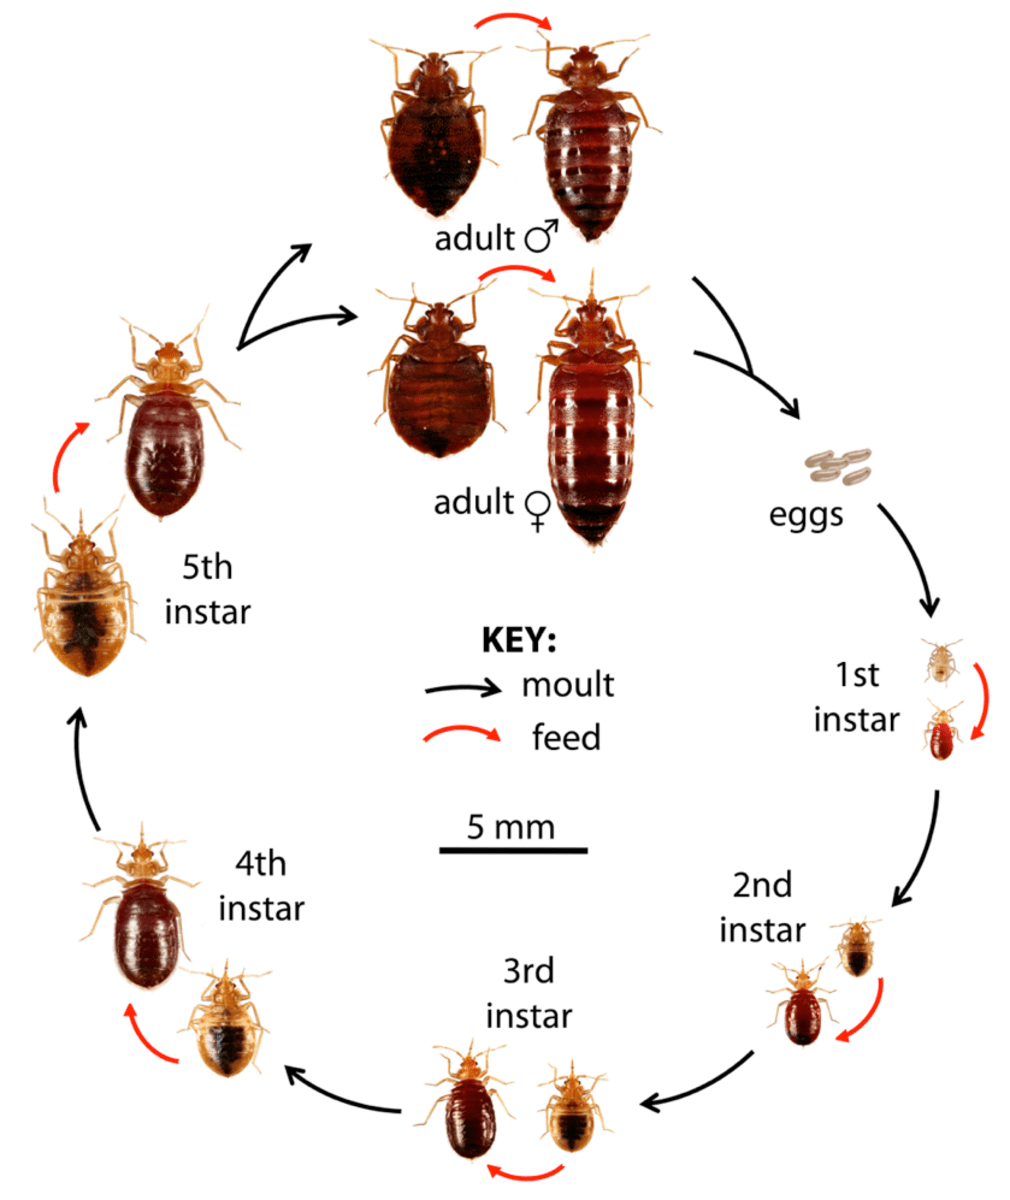 How to Get Rid of Bed Bugs A Low-Cost DIY Extermination Without